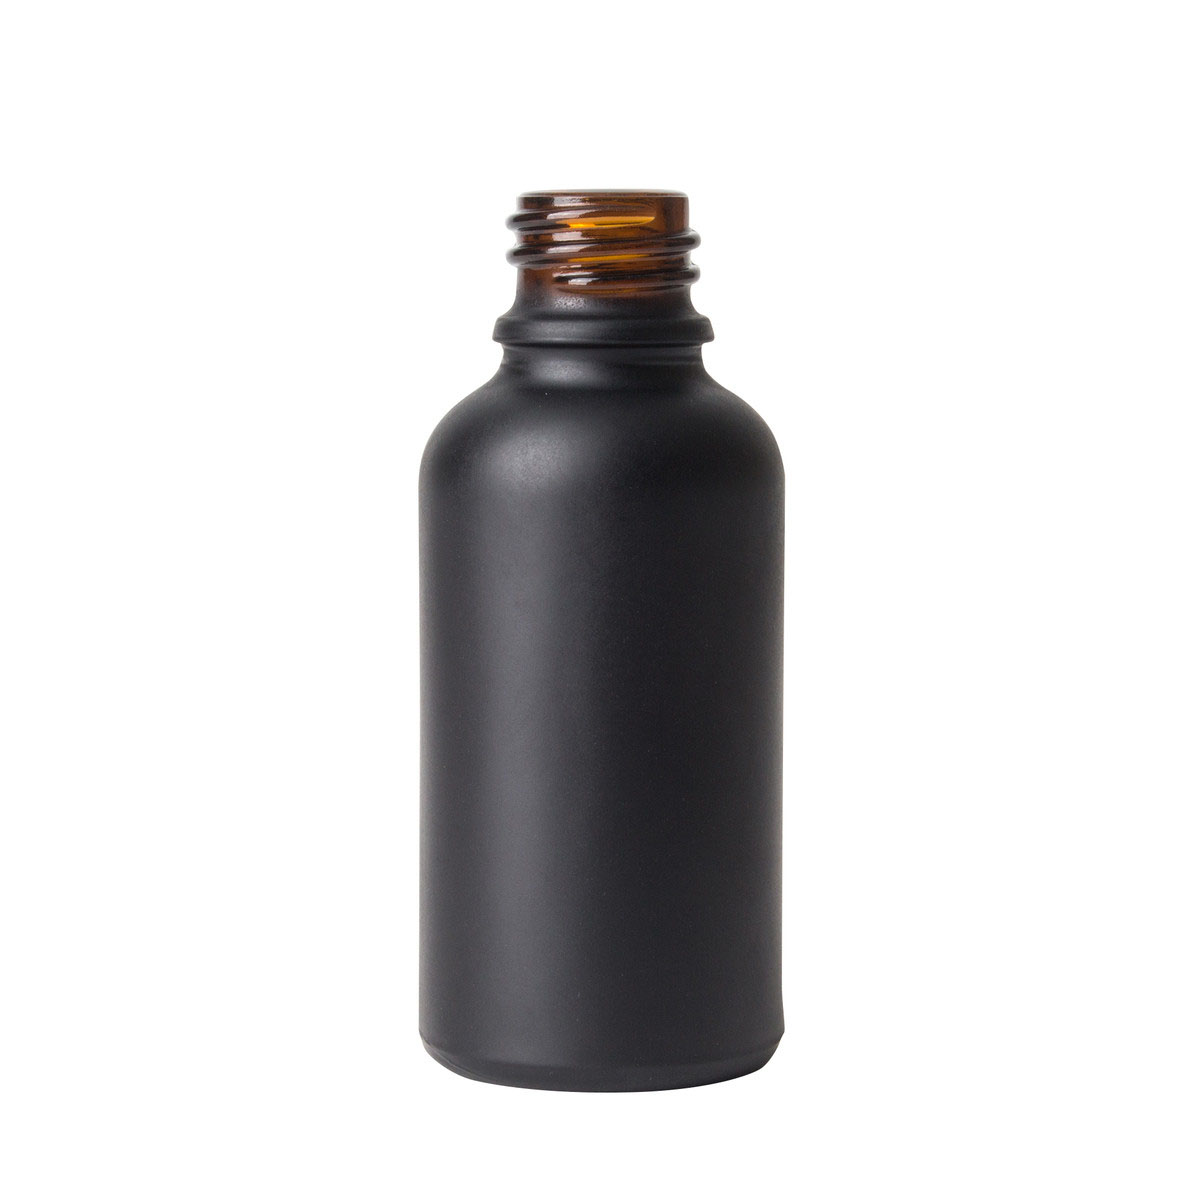 15ml Glass Dropper Bottle In Matte Black (468 Qty.)